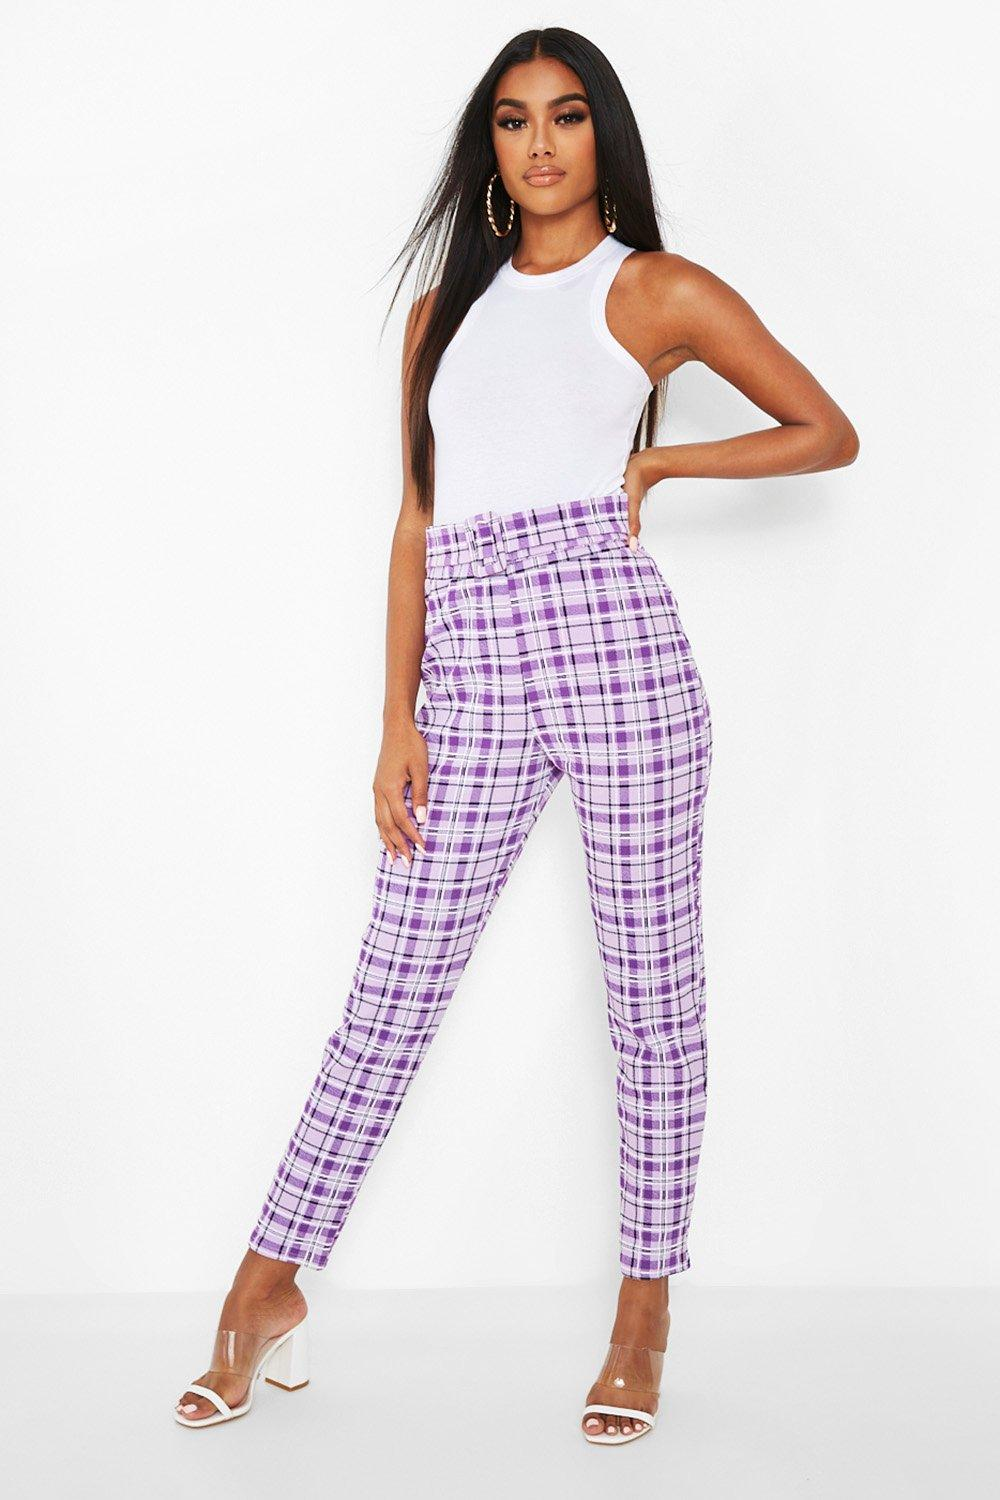 Vintage High Waisted Trousers, Sailor Pants, Jeans Womens Flanneled Belted Skinny Pants - Purple - 12 $16.80 AT vintagedancer.com